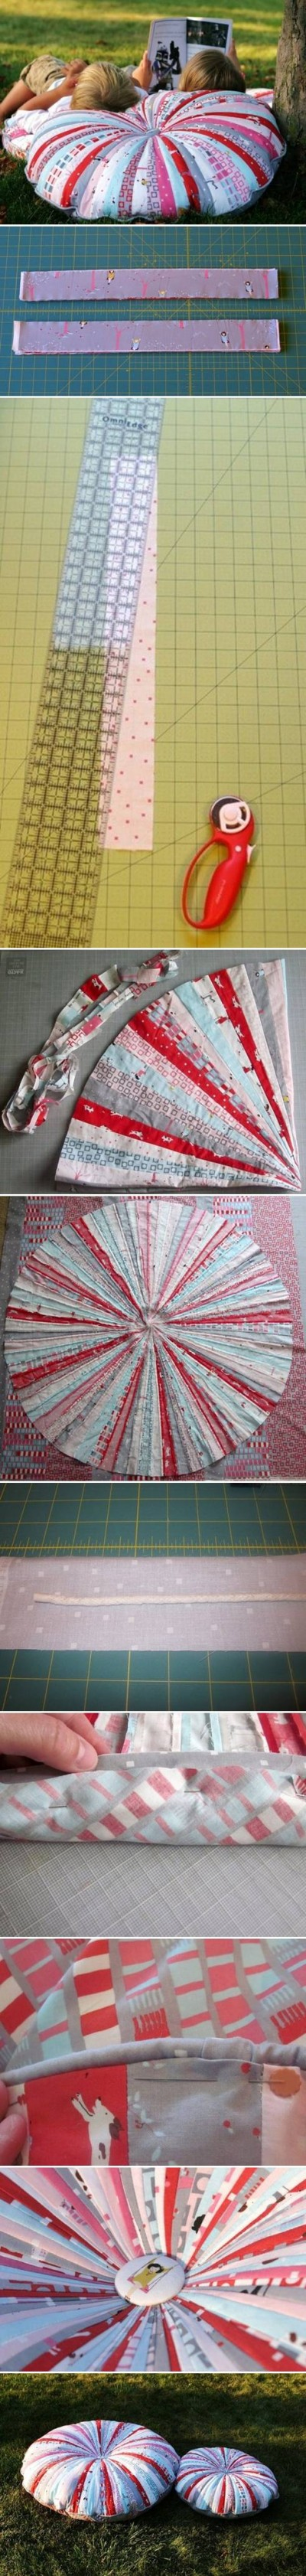 How to make Patchwork Round Pillow step by step DIY tutorial instructions